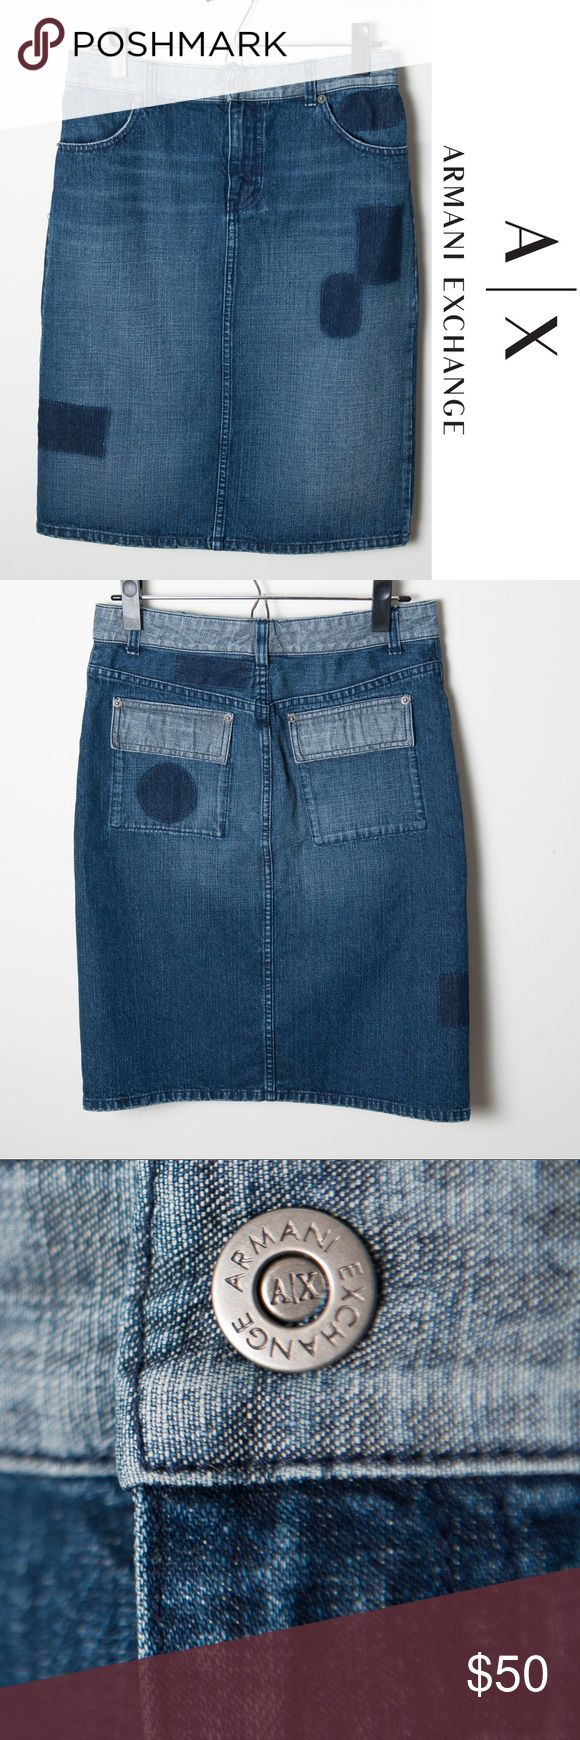 """Armani Exchange Denim Skirt Size 2 Great used condition Armani Exchange denim skirt. Size 2. Has """"patchwork"""" denim of different shades. Not actual patches, but just change in shade. Zip and button closure.  Button is finicky, sometimes it doesn't stay snapped. Can be an easy fix by replacing if you didn't want to use the A/X button anymore. Approximate measurements - 24"""" waist, 22"""" length. A/X Armani Exchange Skirts Pencil"""